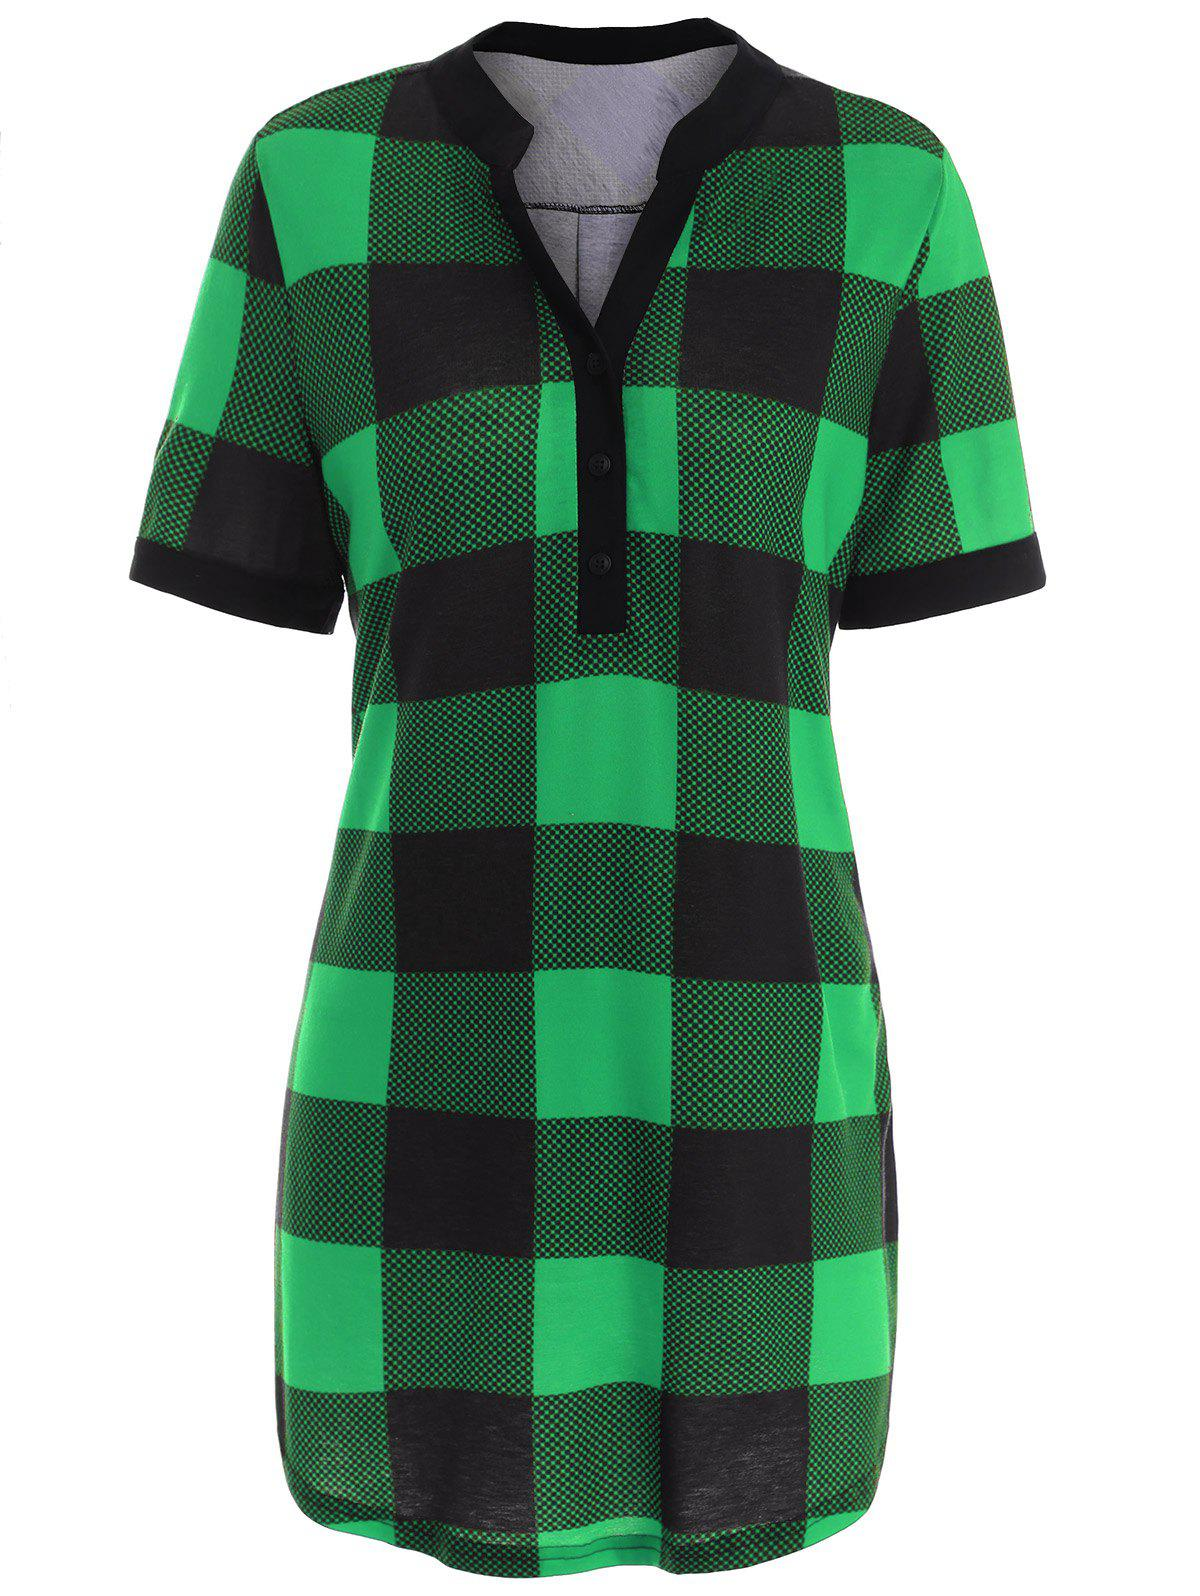 Plaid Plus Size Tunic Top plaid trim tunic top